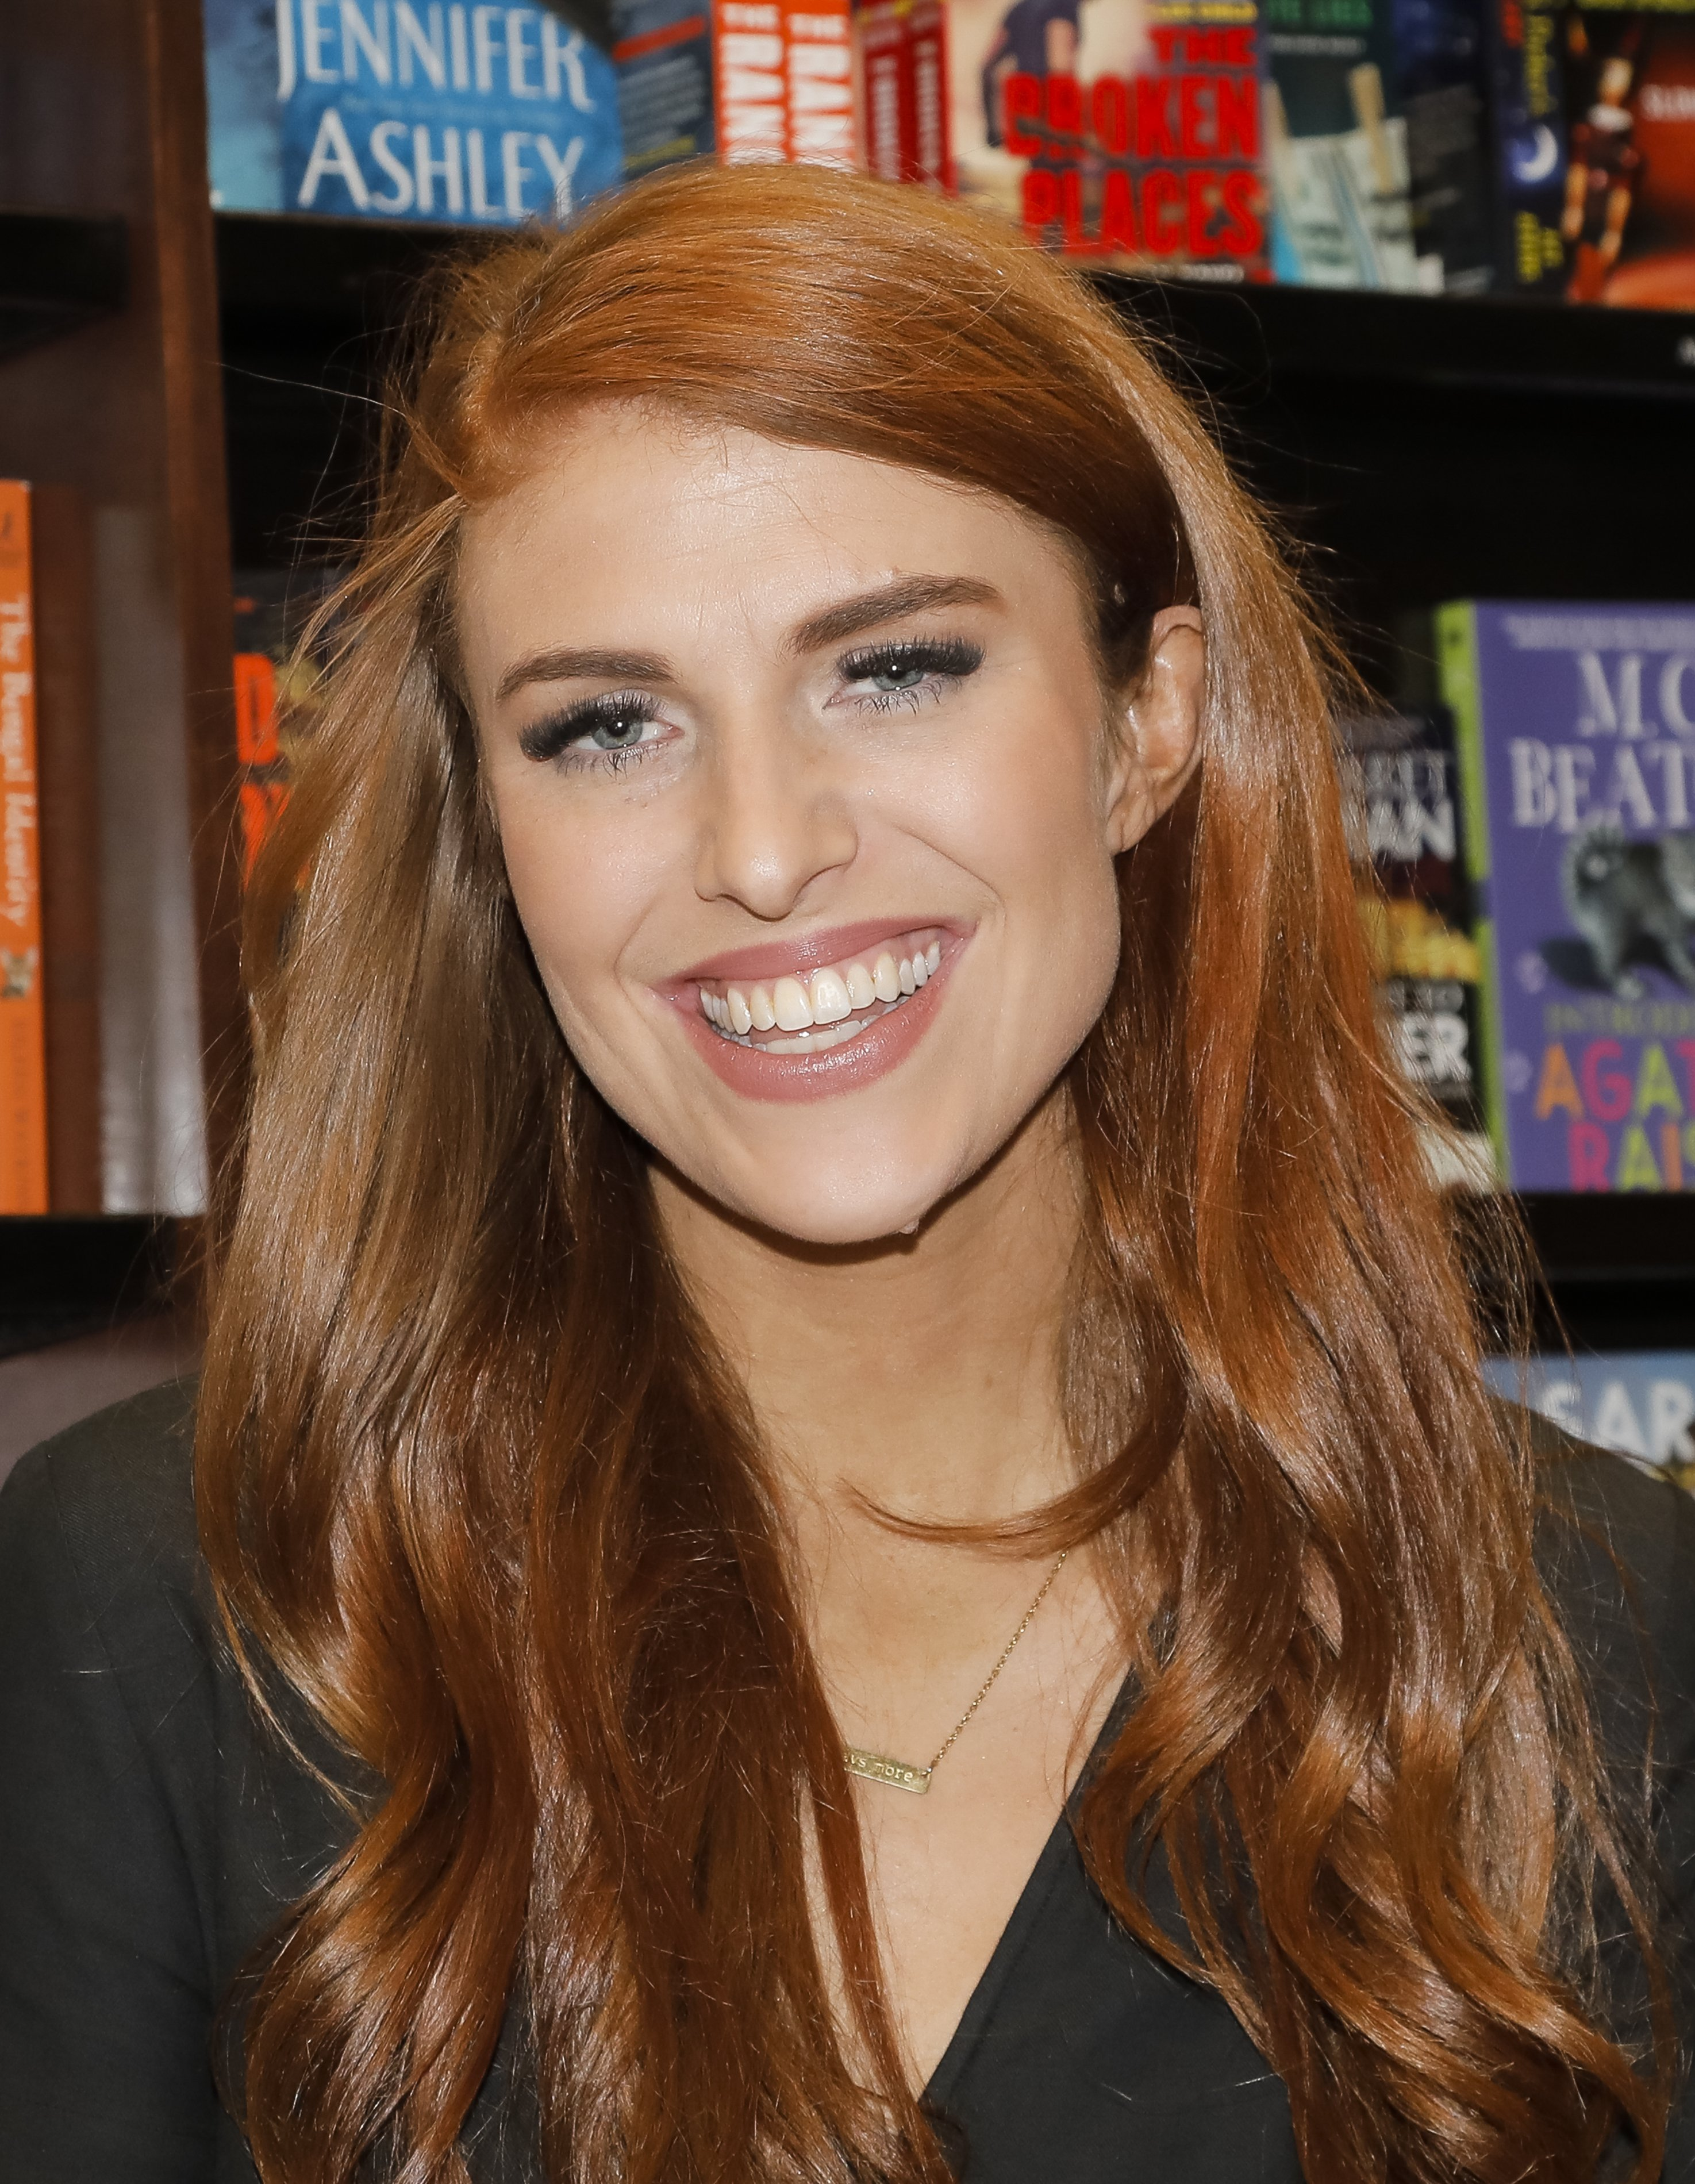 Audrey Roloff celebrates her new book 'A Love Letter Life' at Barnes & Noble at The Grove on April 10, 2019 in Los Angeles, California | Photo: Getty Images